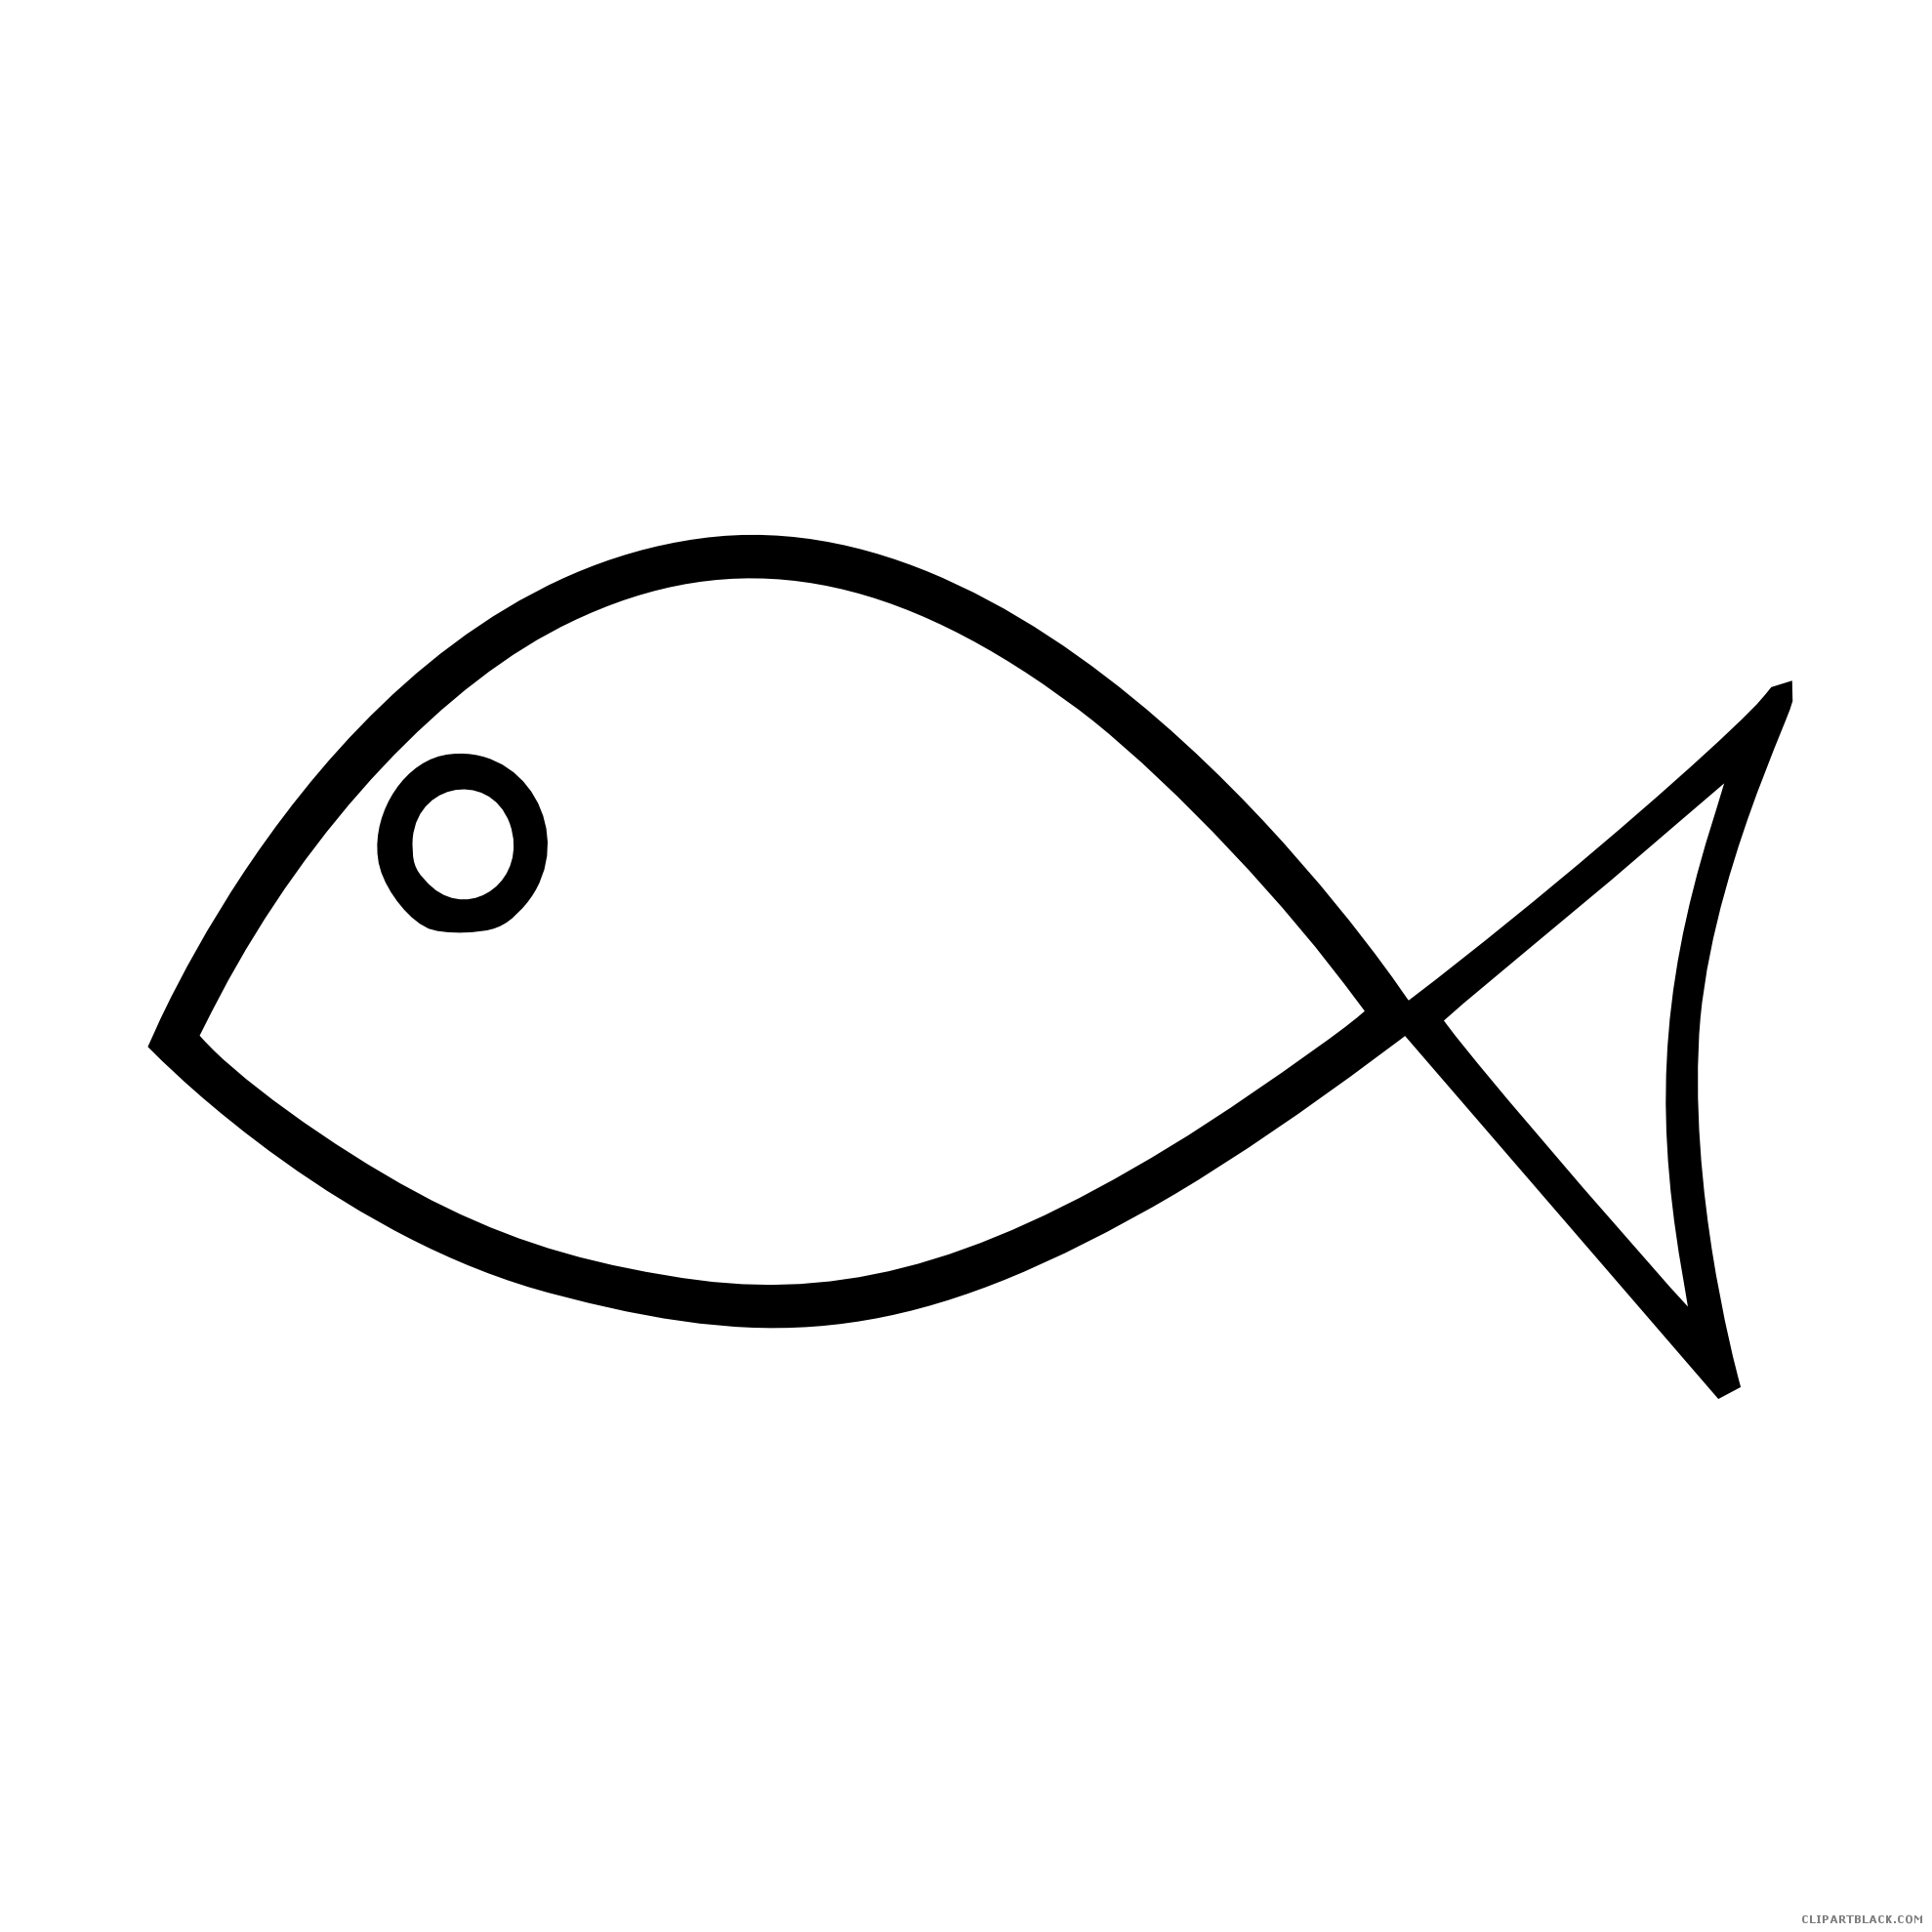 Fish in a pond clipart black and white clipart Fish - Page 46 of 56 - ClipartBlack.com clipart